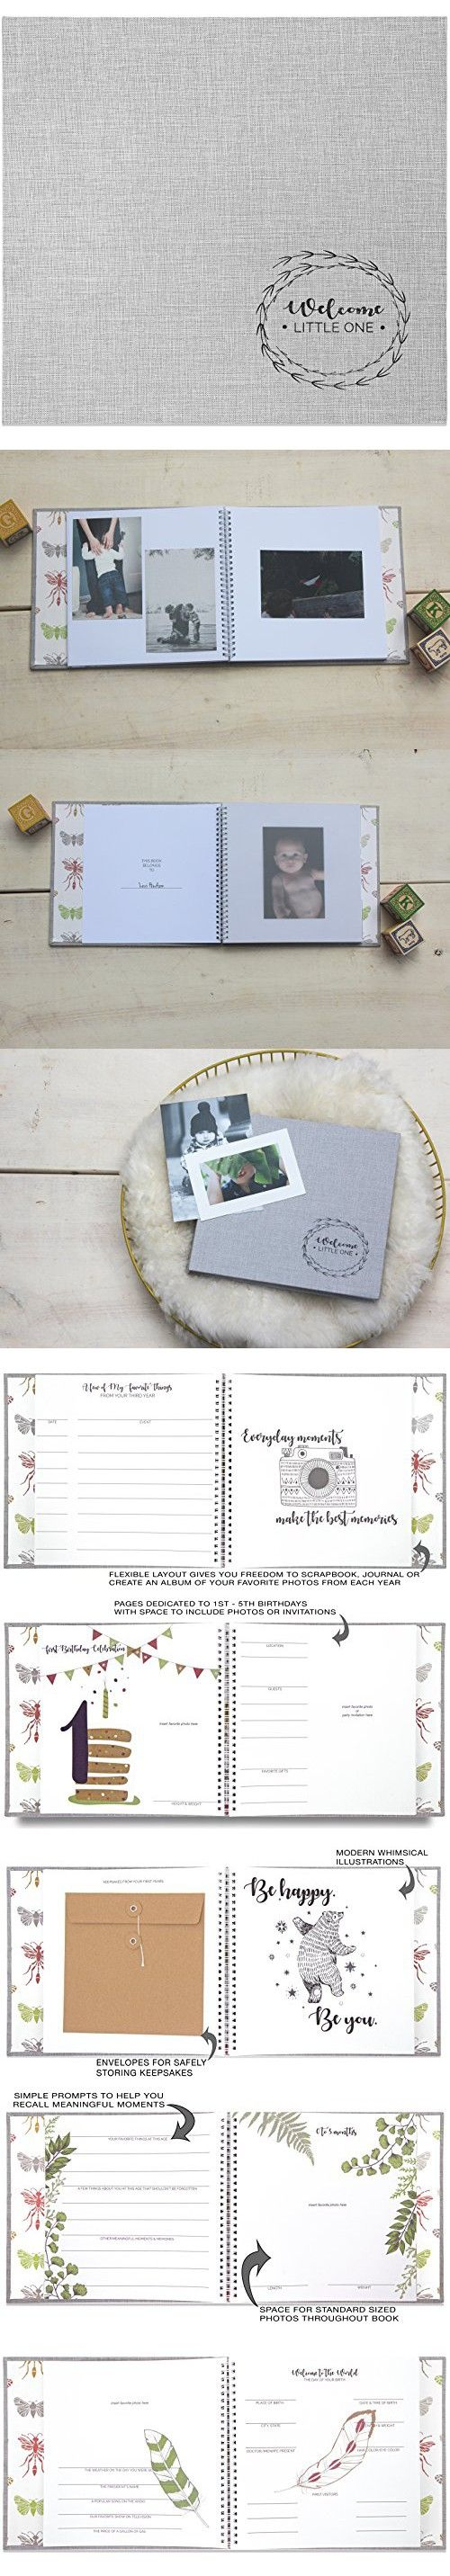 Smitten Provisions Baby Memory Book + Baby Journal - Modern Gender Neutral Design Ideal for Baby Boys + Girls - Record Milestones from First 5 Years - Space for 4x6 Photos, Scrapbooking and Keepsakes